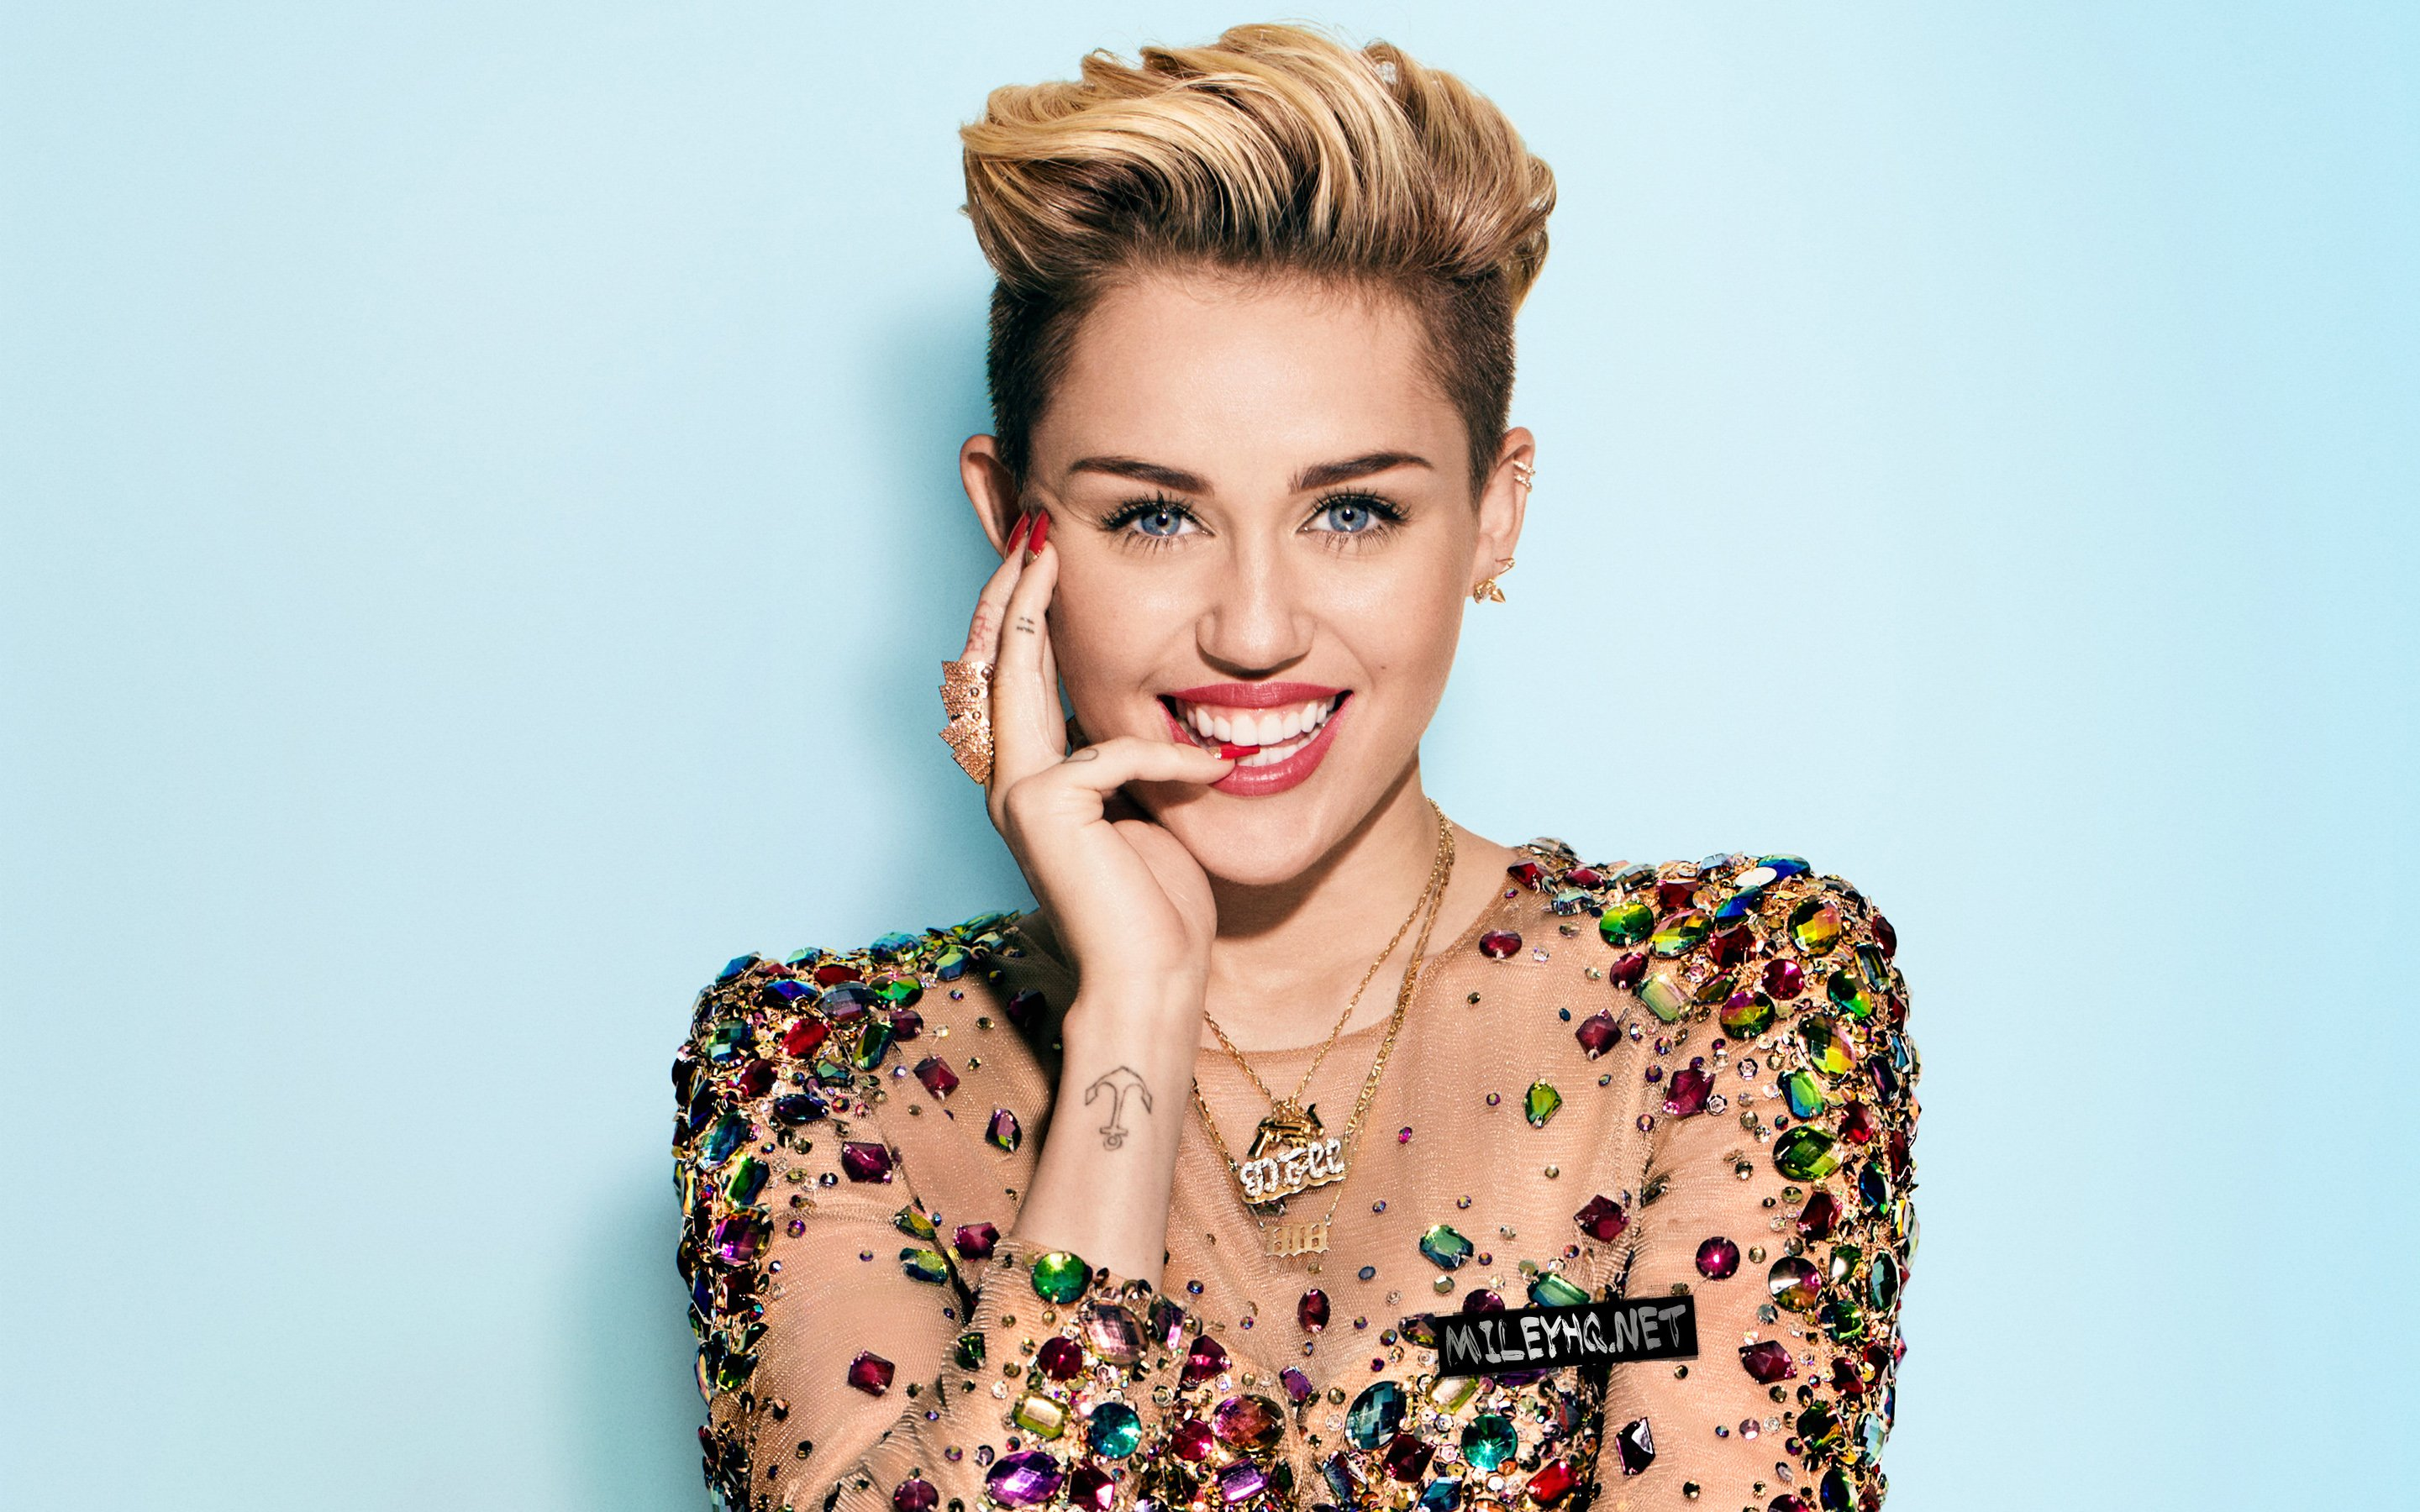 miley cyrus career Miley cyrus' career timeline, gifs, pictures from hannah montana, the last song, we can't stop, wrecking ball, hair cut for her 21st birthday.